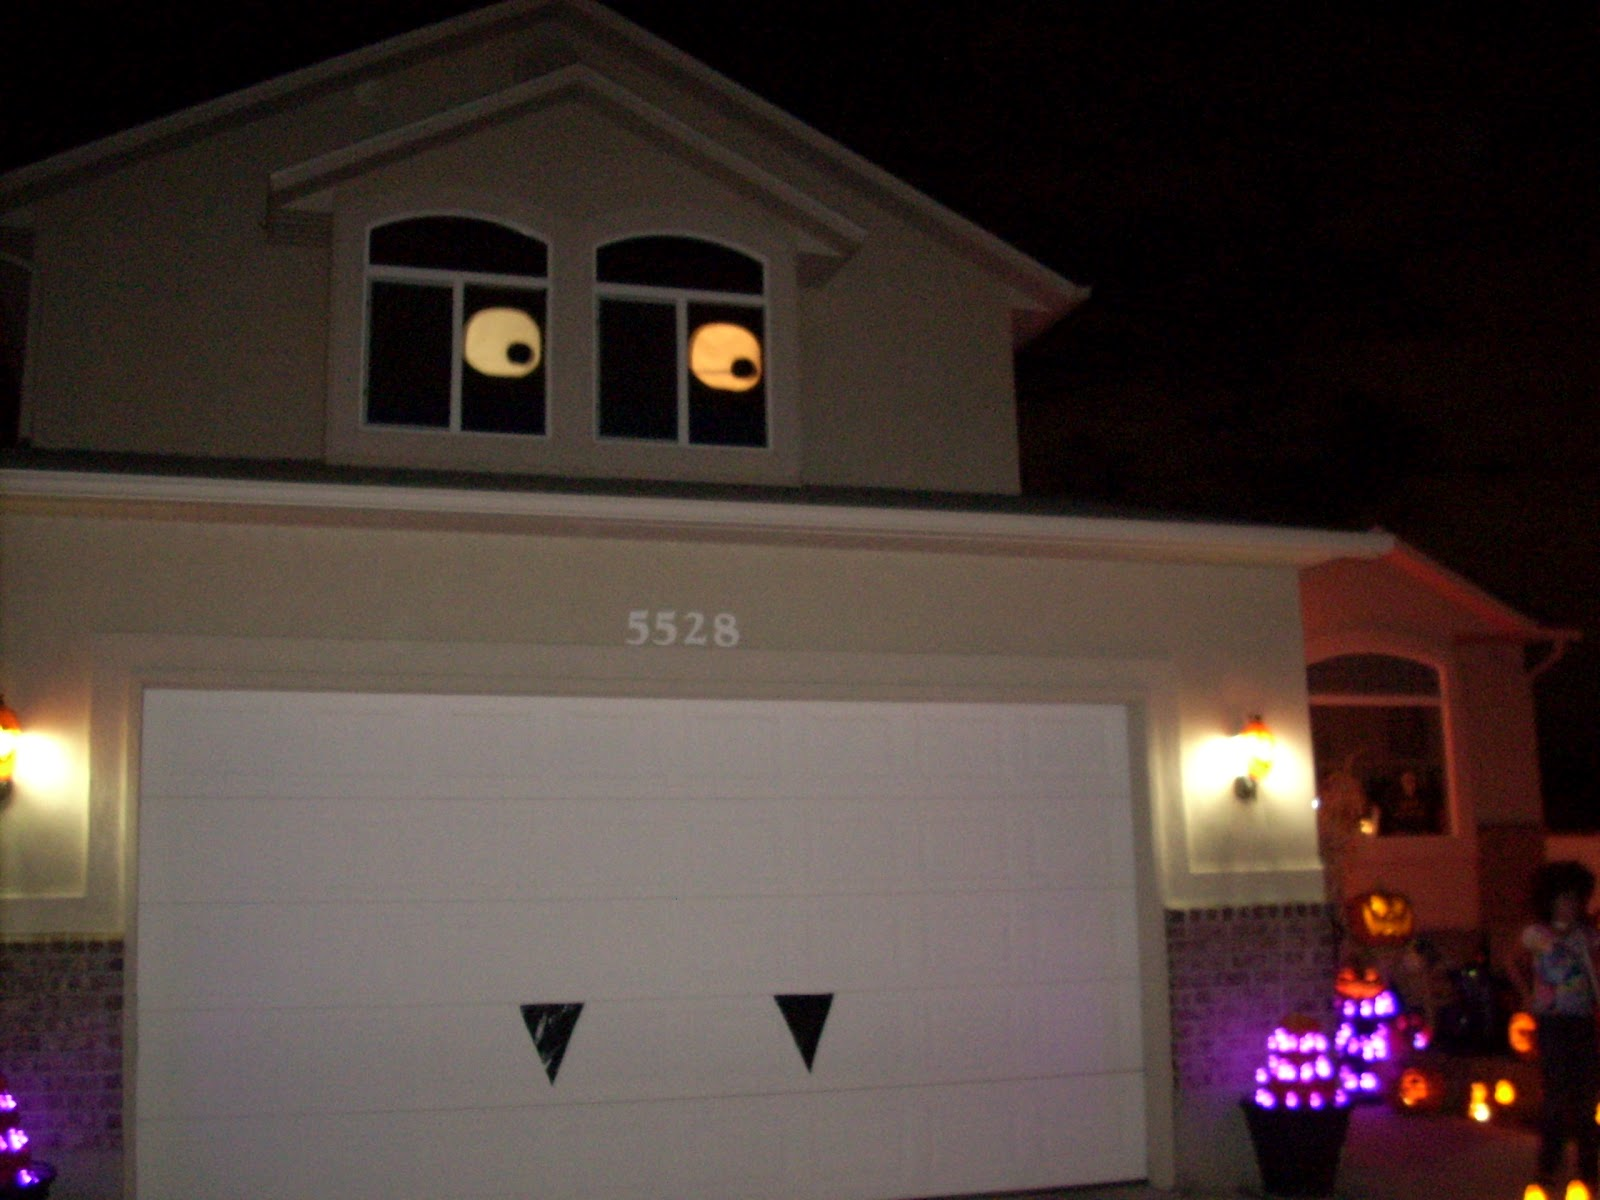 Diy halloween garage door decorations - I Know It S The Middle Of Summer But I Look Forward To The Fall It S My Favorite Season So Here S A Halloween Decor Recipe For Your Windows